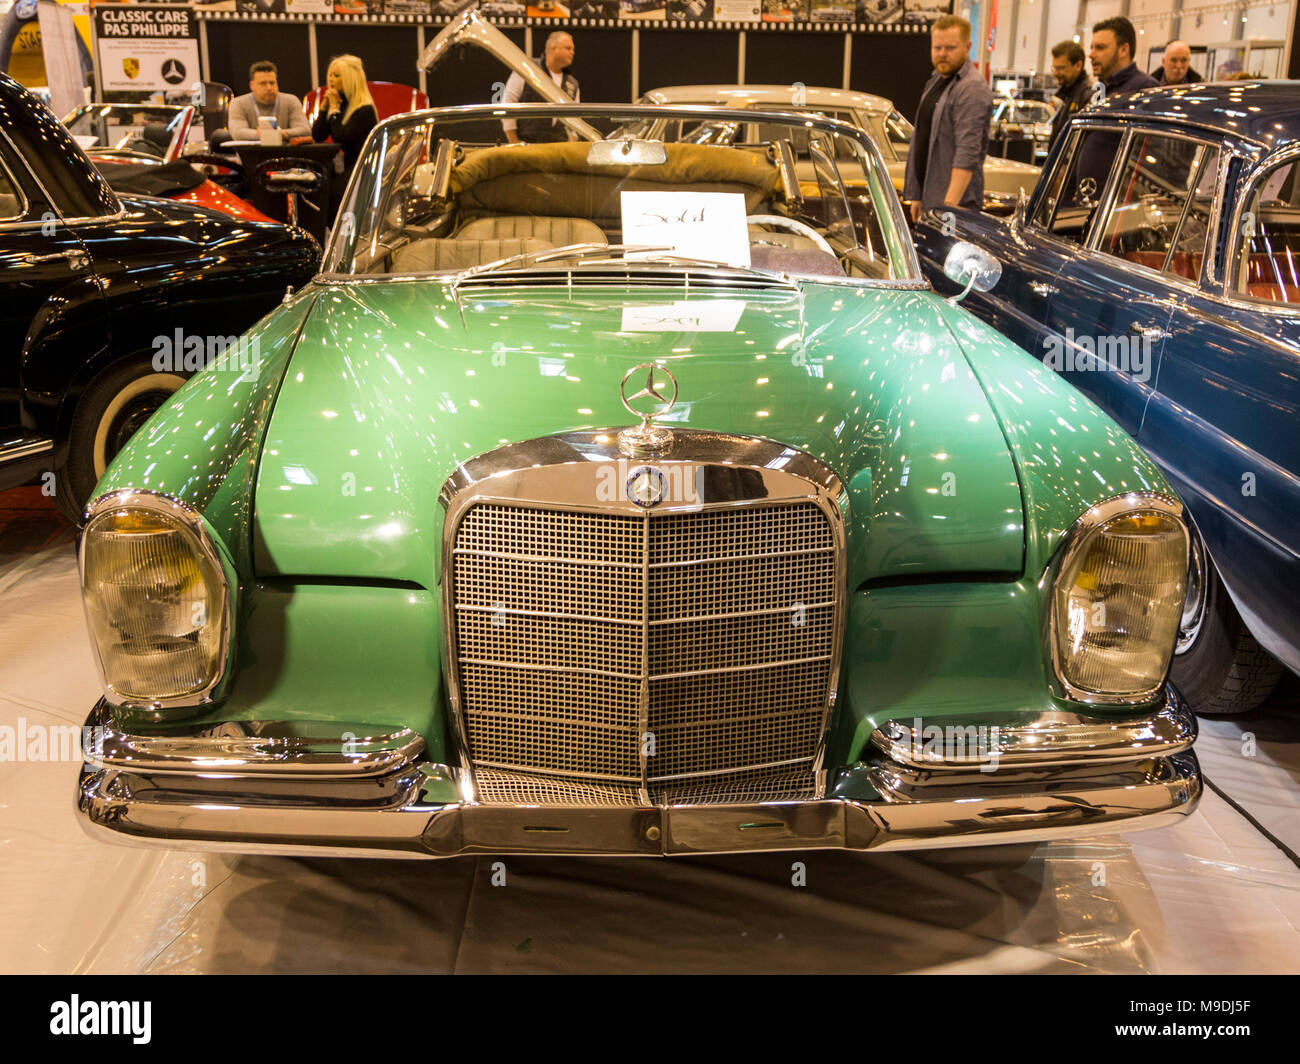 Vintage Mercedes Benz Convertible Light Green Techno Classica Essen Is The World Leading Automobile Show For Classic And Vintage Cars And Collectible Automobiles In 2018 The Motor Show Attracted Over 185 000 Visitors More Than